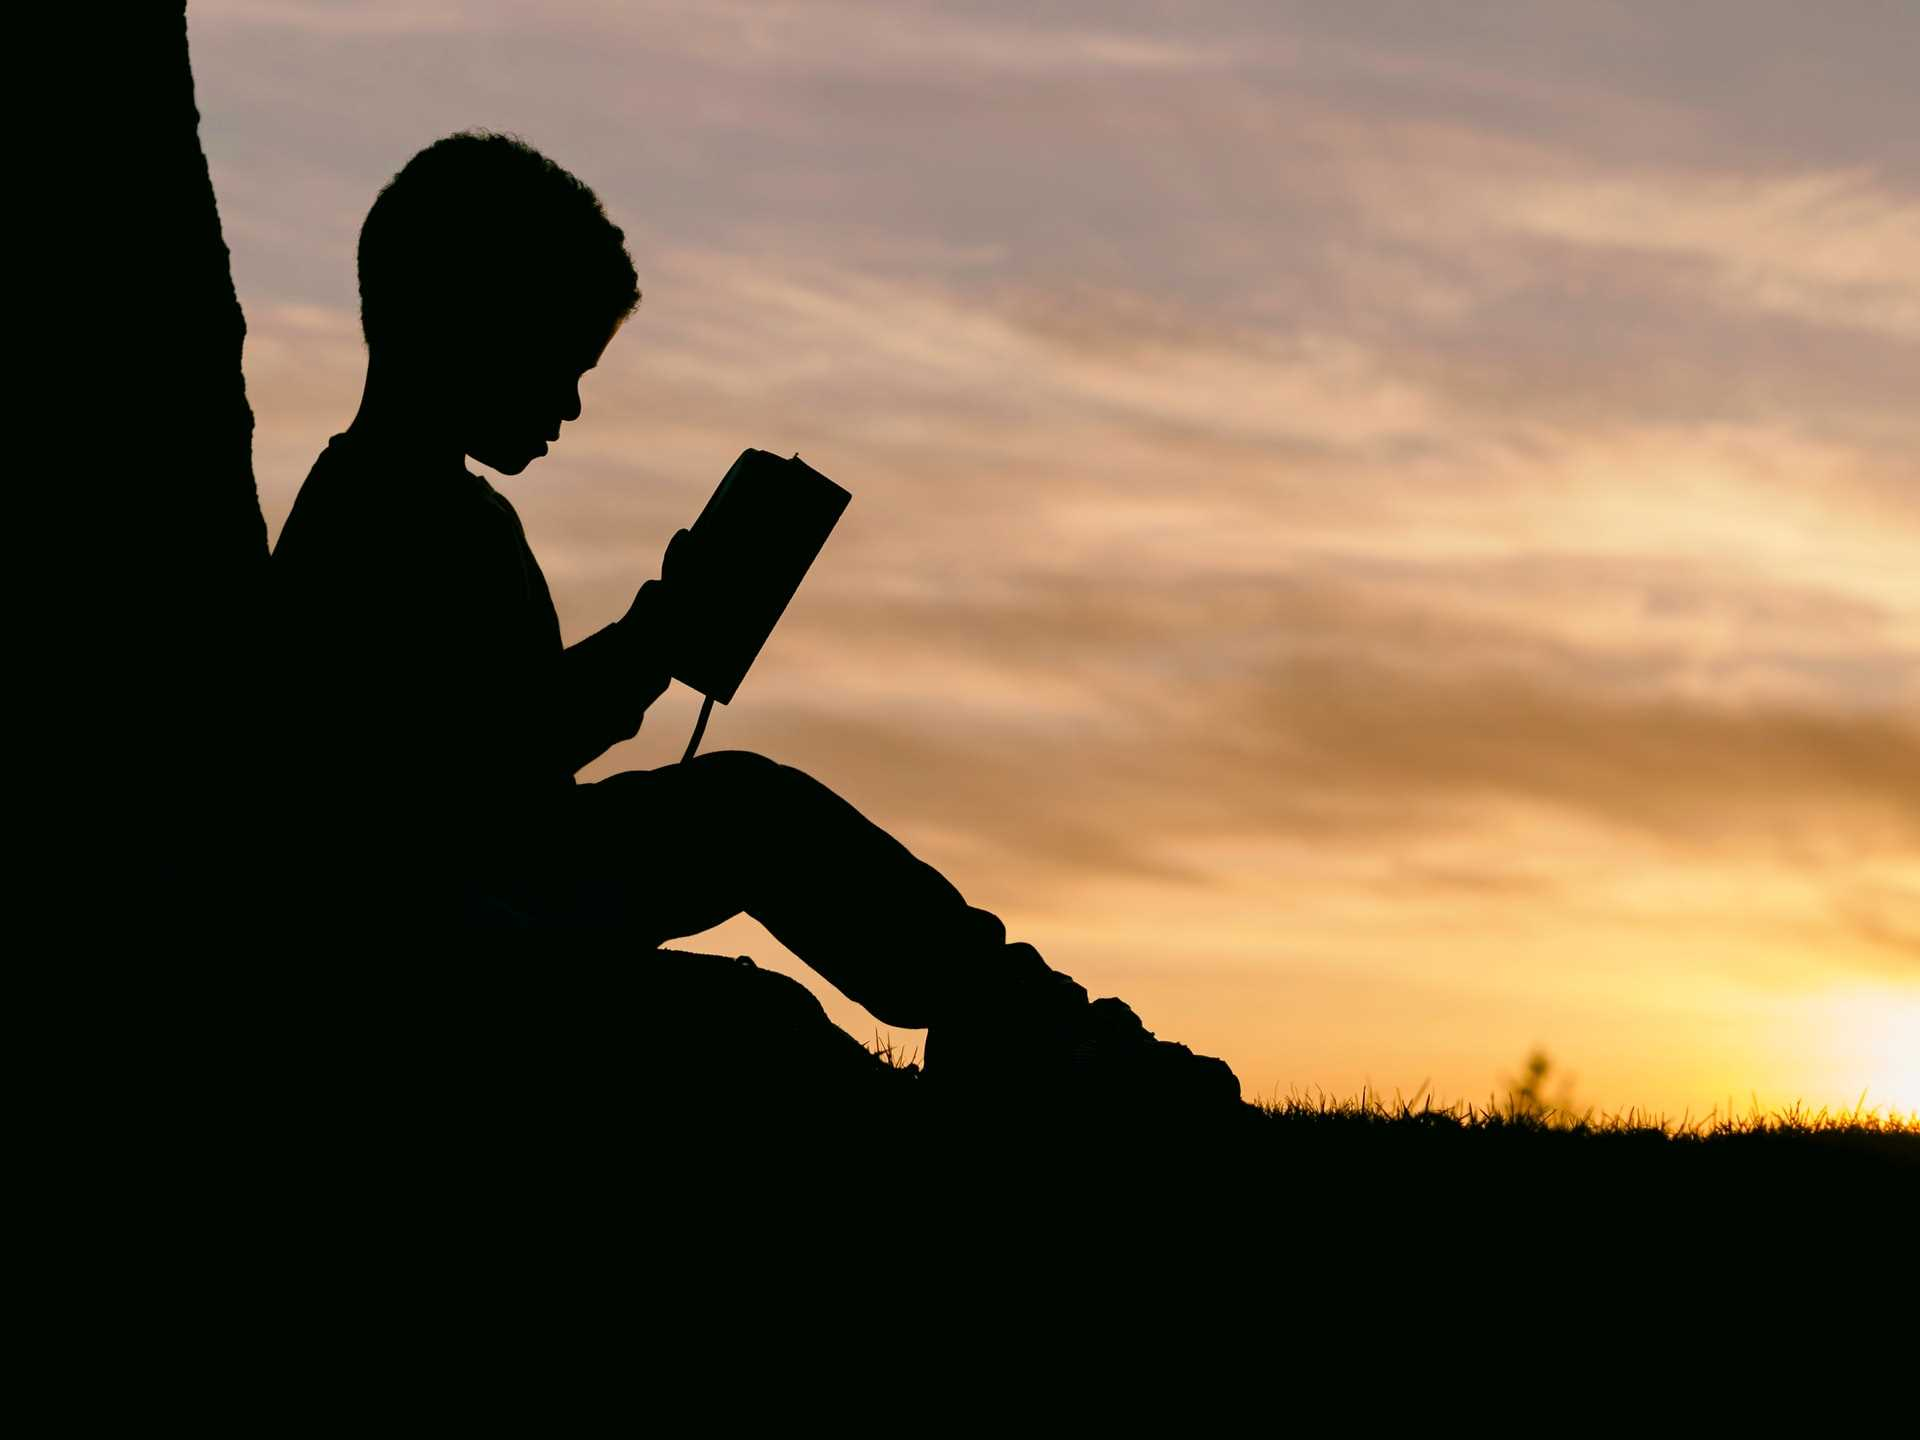 What Will You Be Reading in Billericay on Sunday?